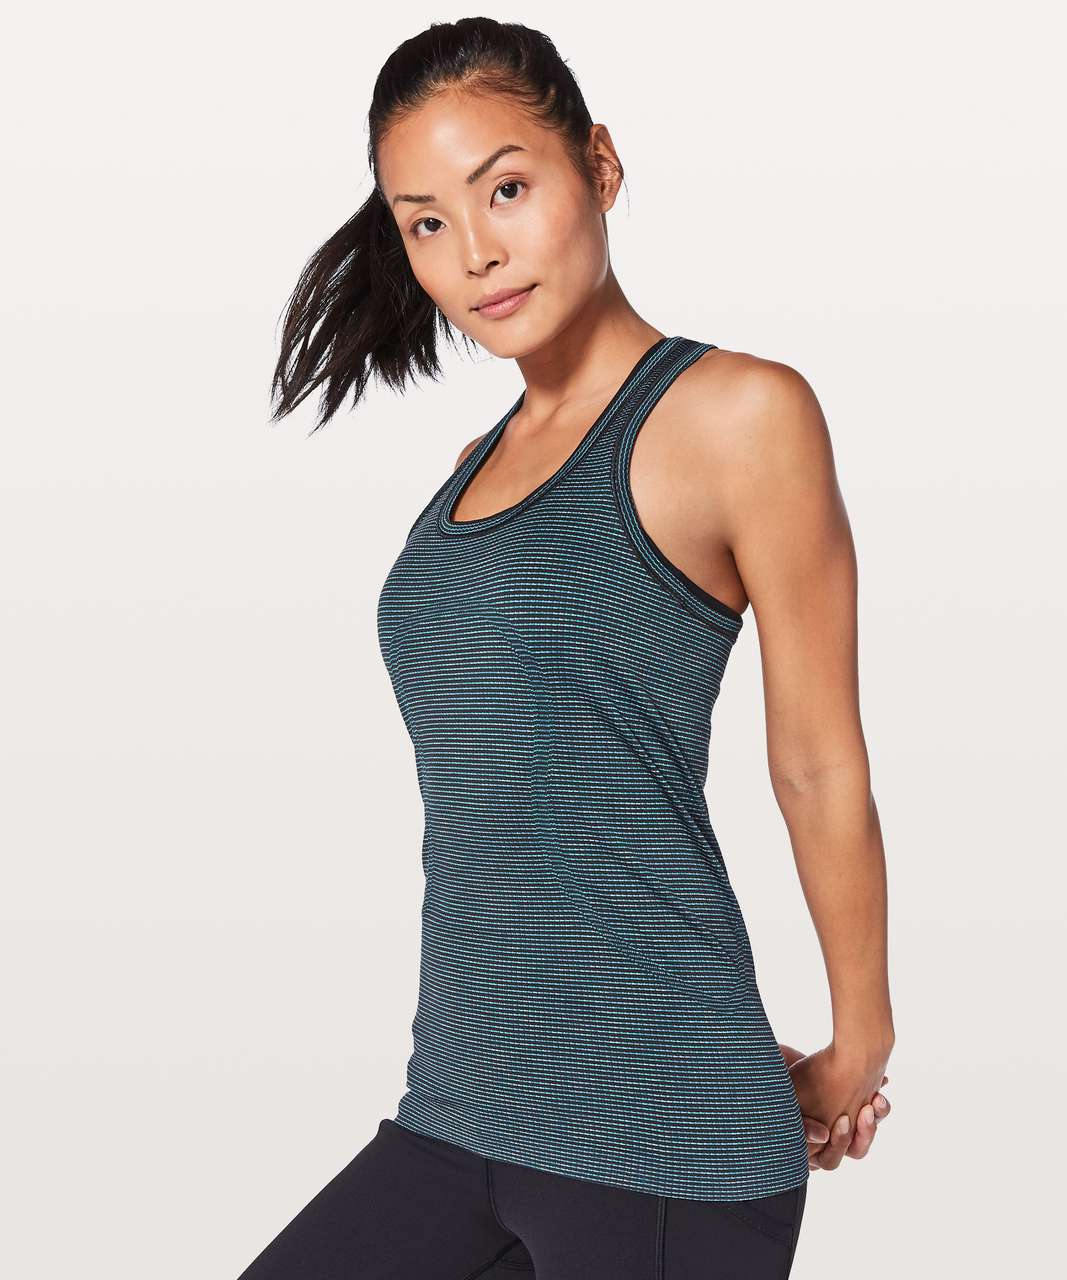 Lululemon Swiftly Tech Racerback - Dark Maritime / Black / Lavender / Blue